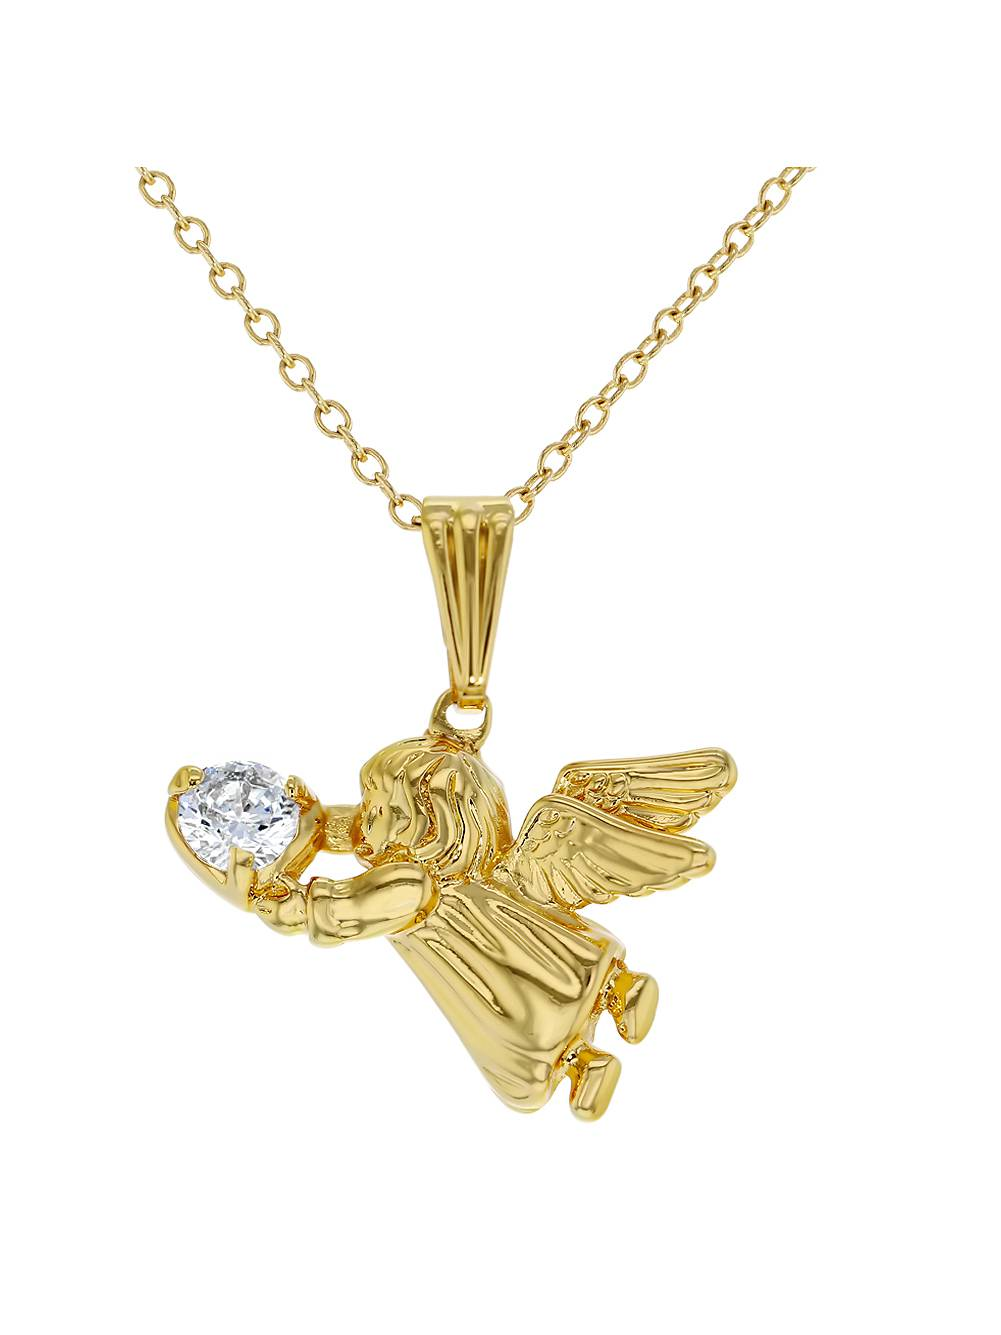 In Season Jewelry 18k Gold Plated Guardian Angel Pendant Necklace Kids Girls Children CZ 16""